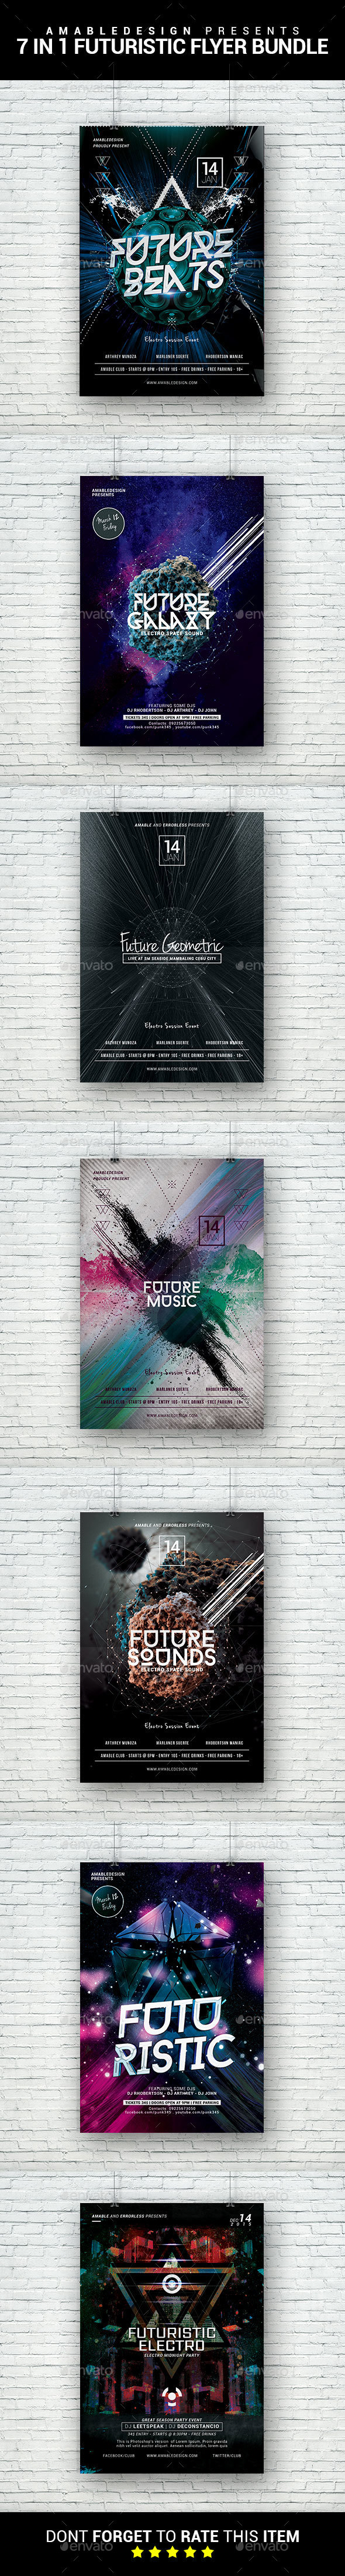 7 in 1 Futuristic Flyer/Poster Bundle - Clubs & Parties Events